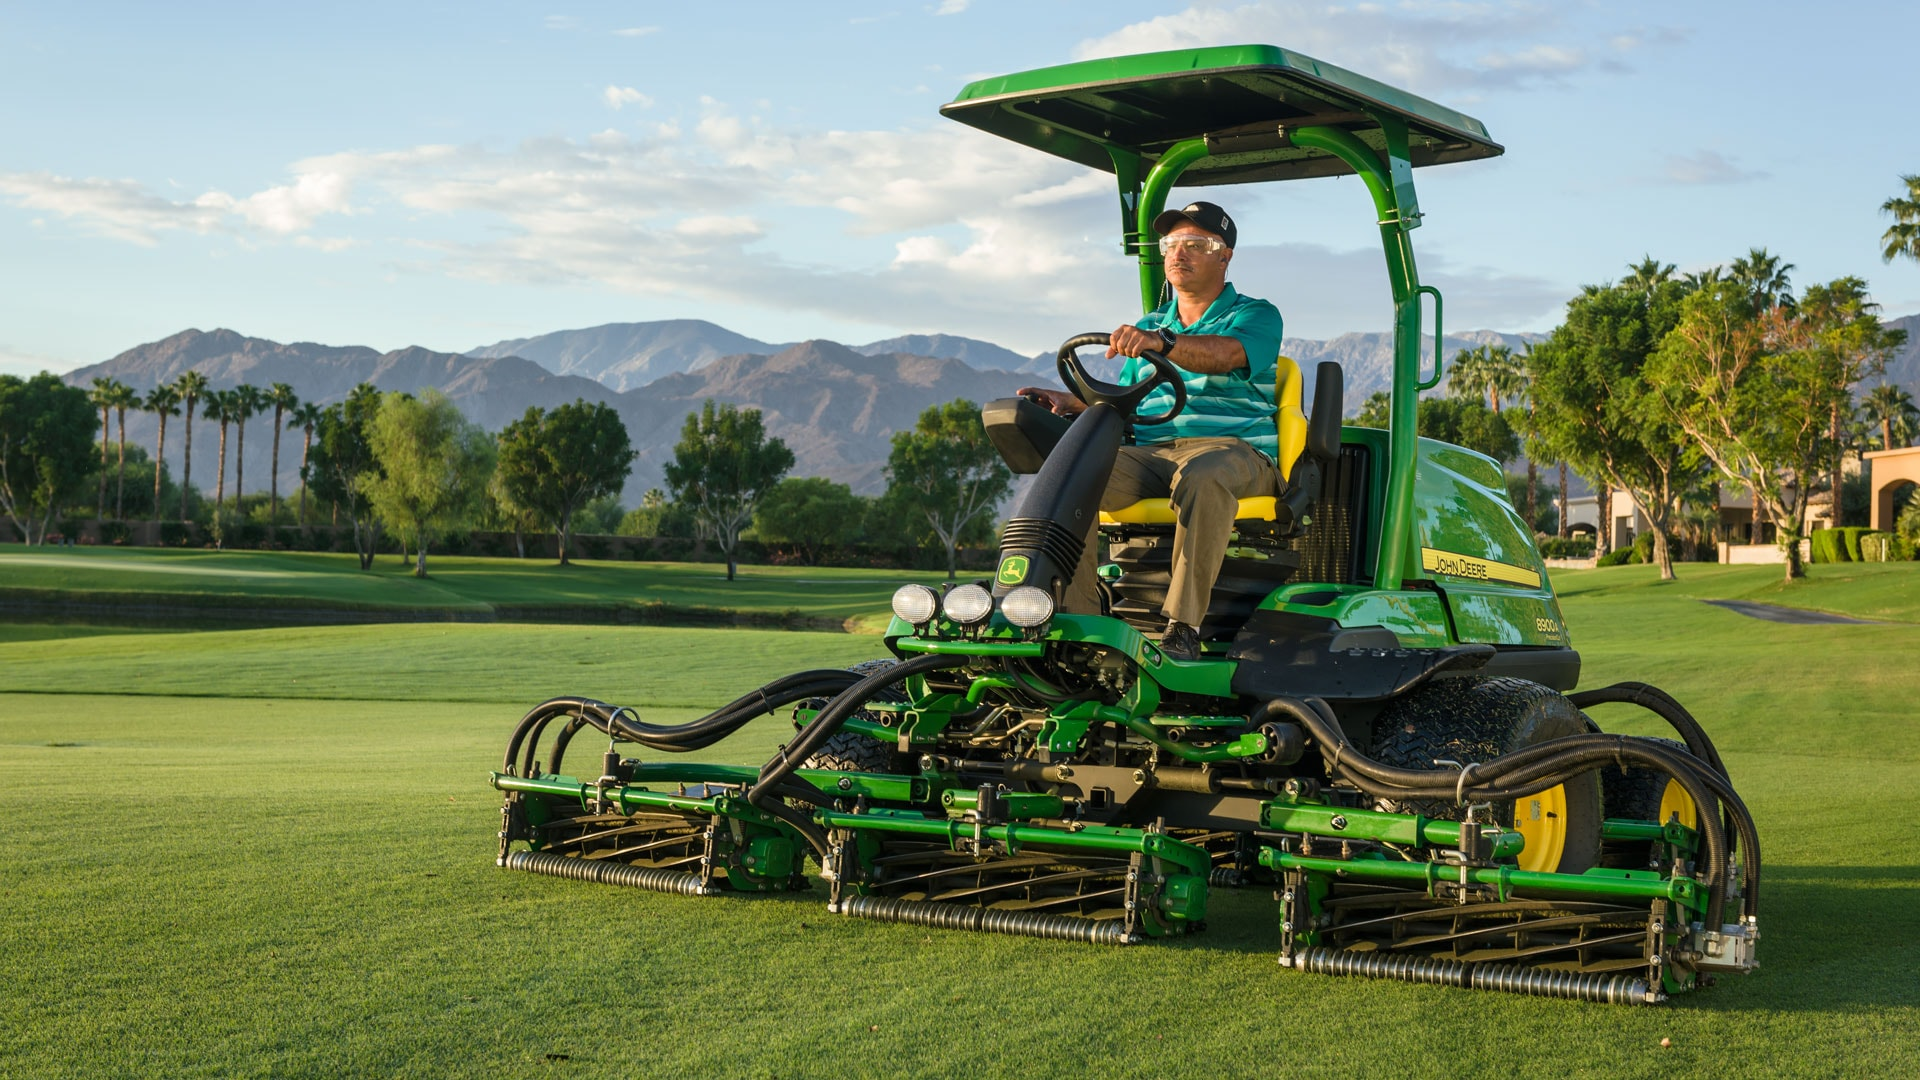 The A Model Mowers from John Deere